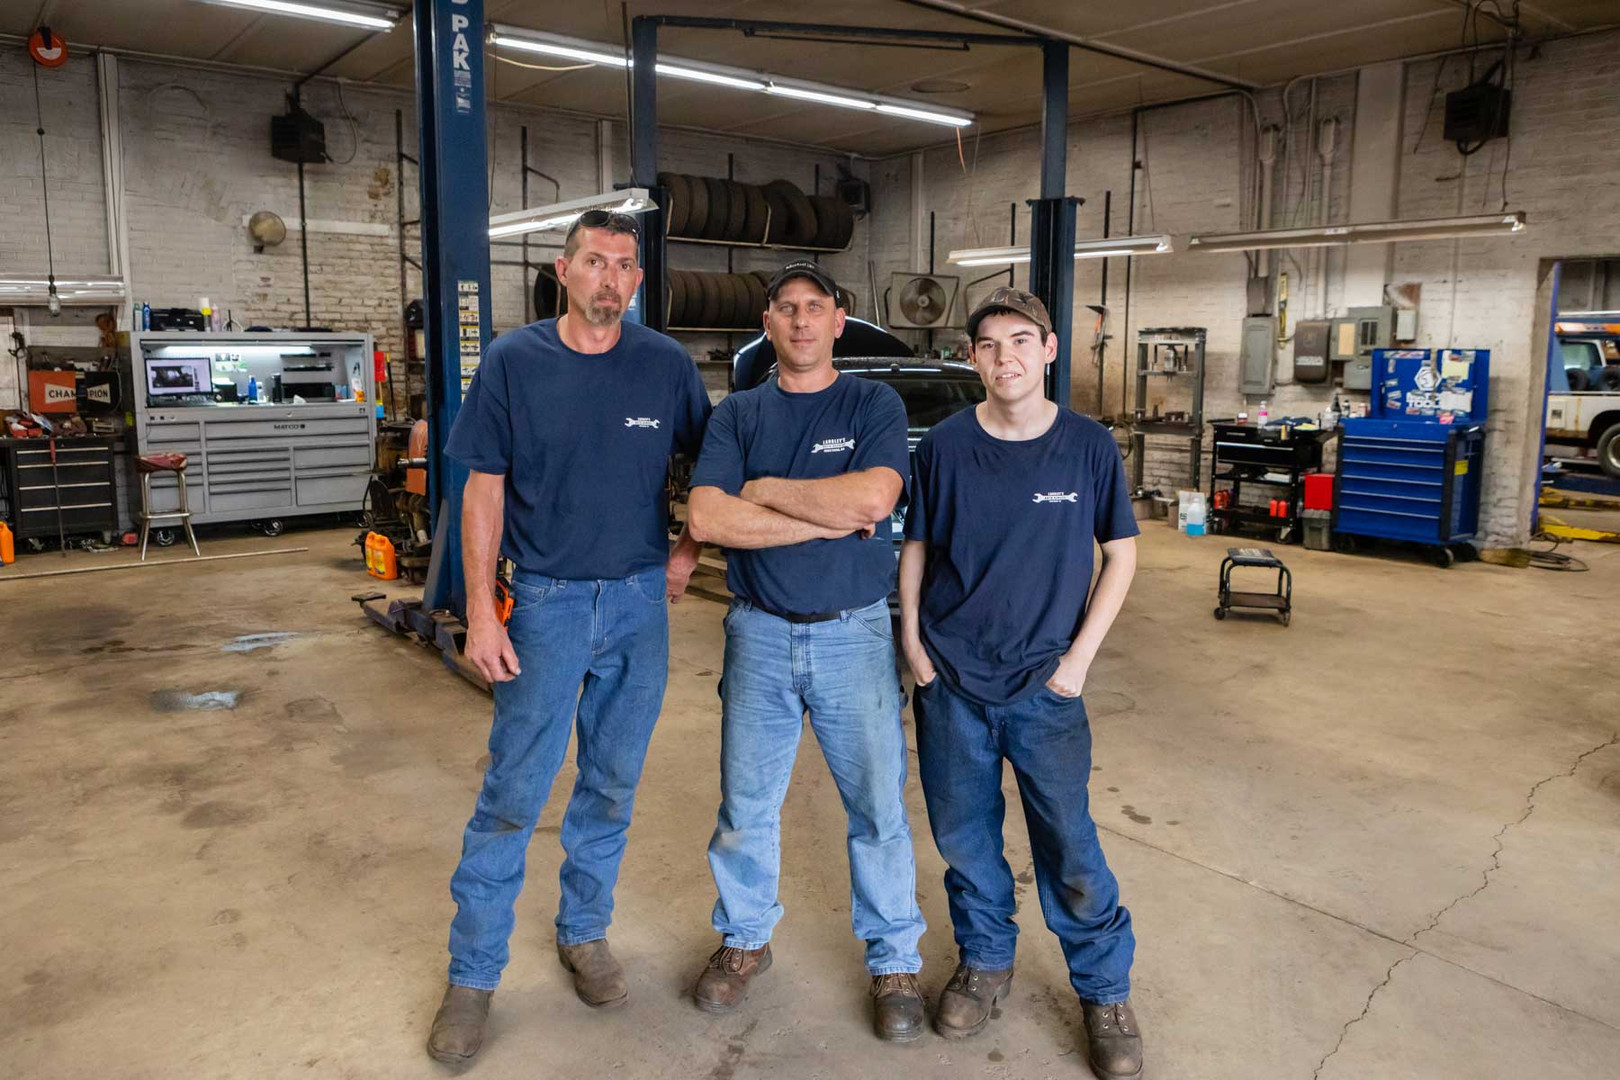 Auto technicians in frostburg maryland 21532